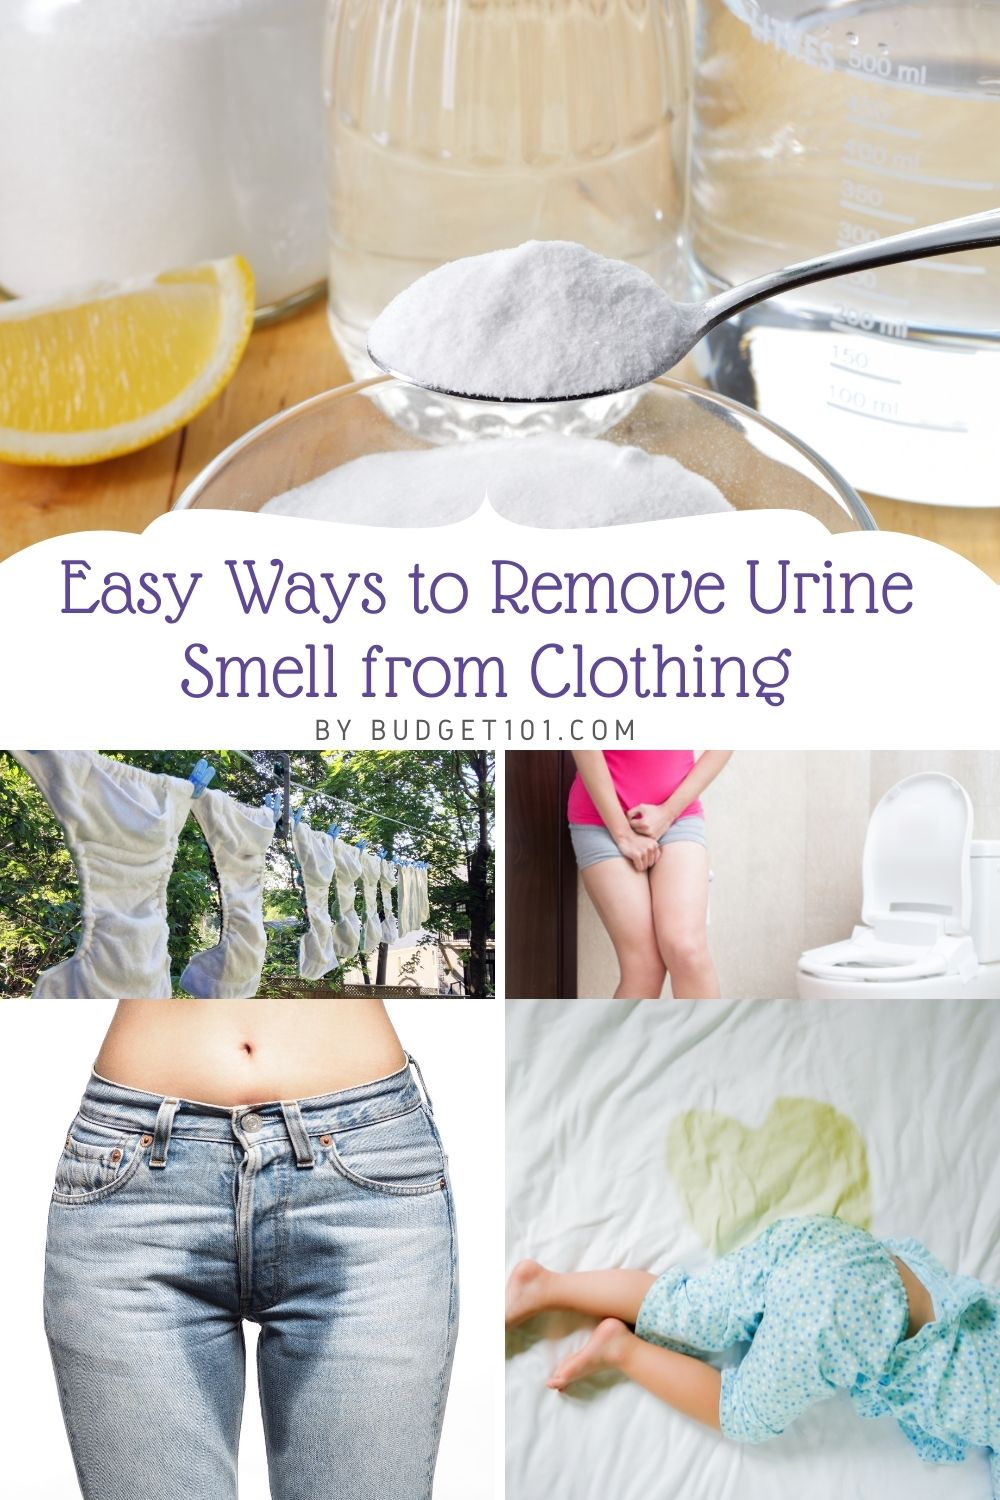 Easy Ways to Remove Urine Smell from Clothing! Pet urine stains are bad enough, but human urine stains are worse! Either way, urine can be quite stinky and messy. Here are some easy ways to remove the smell of urine from your clothing. #budget101 #cleaningtips #urinesmellremoval #peestains #DIY #Howto